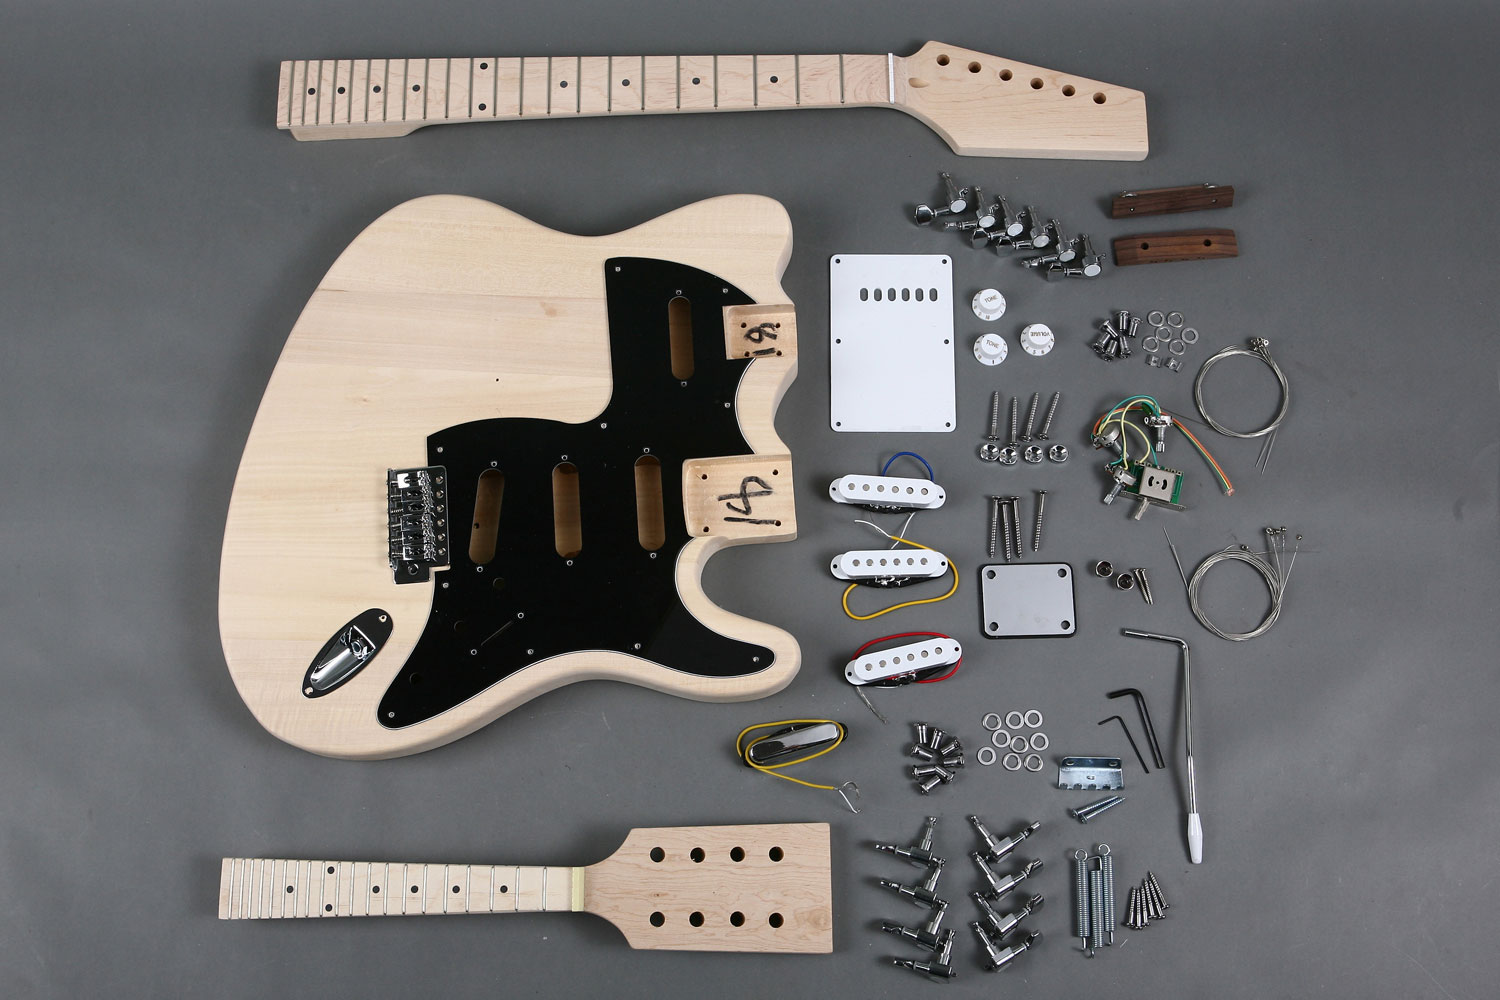 Fender Double Neck Wiring Diagram | New Wiring Resources 2019 on